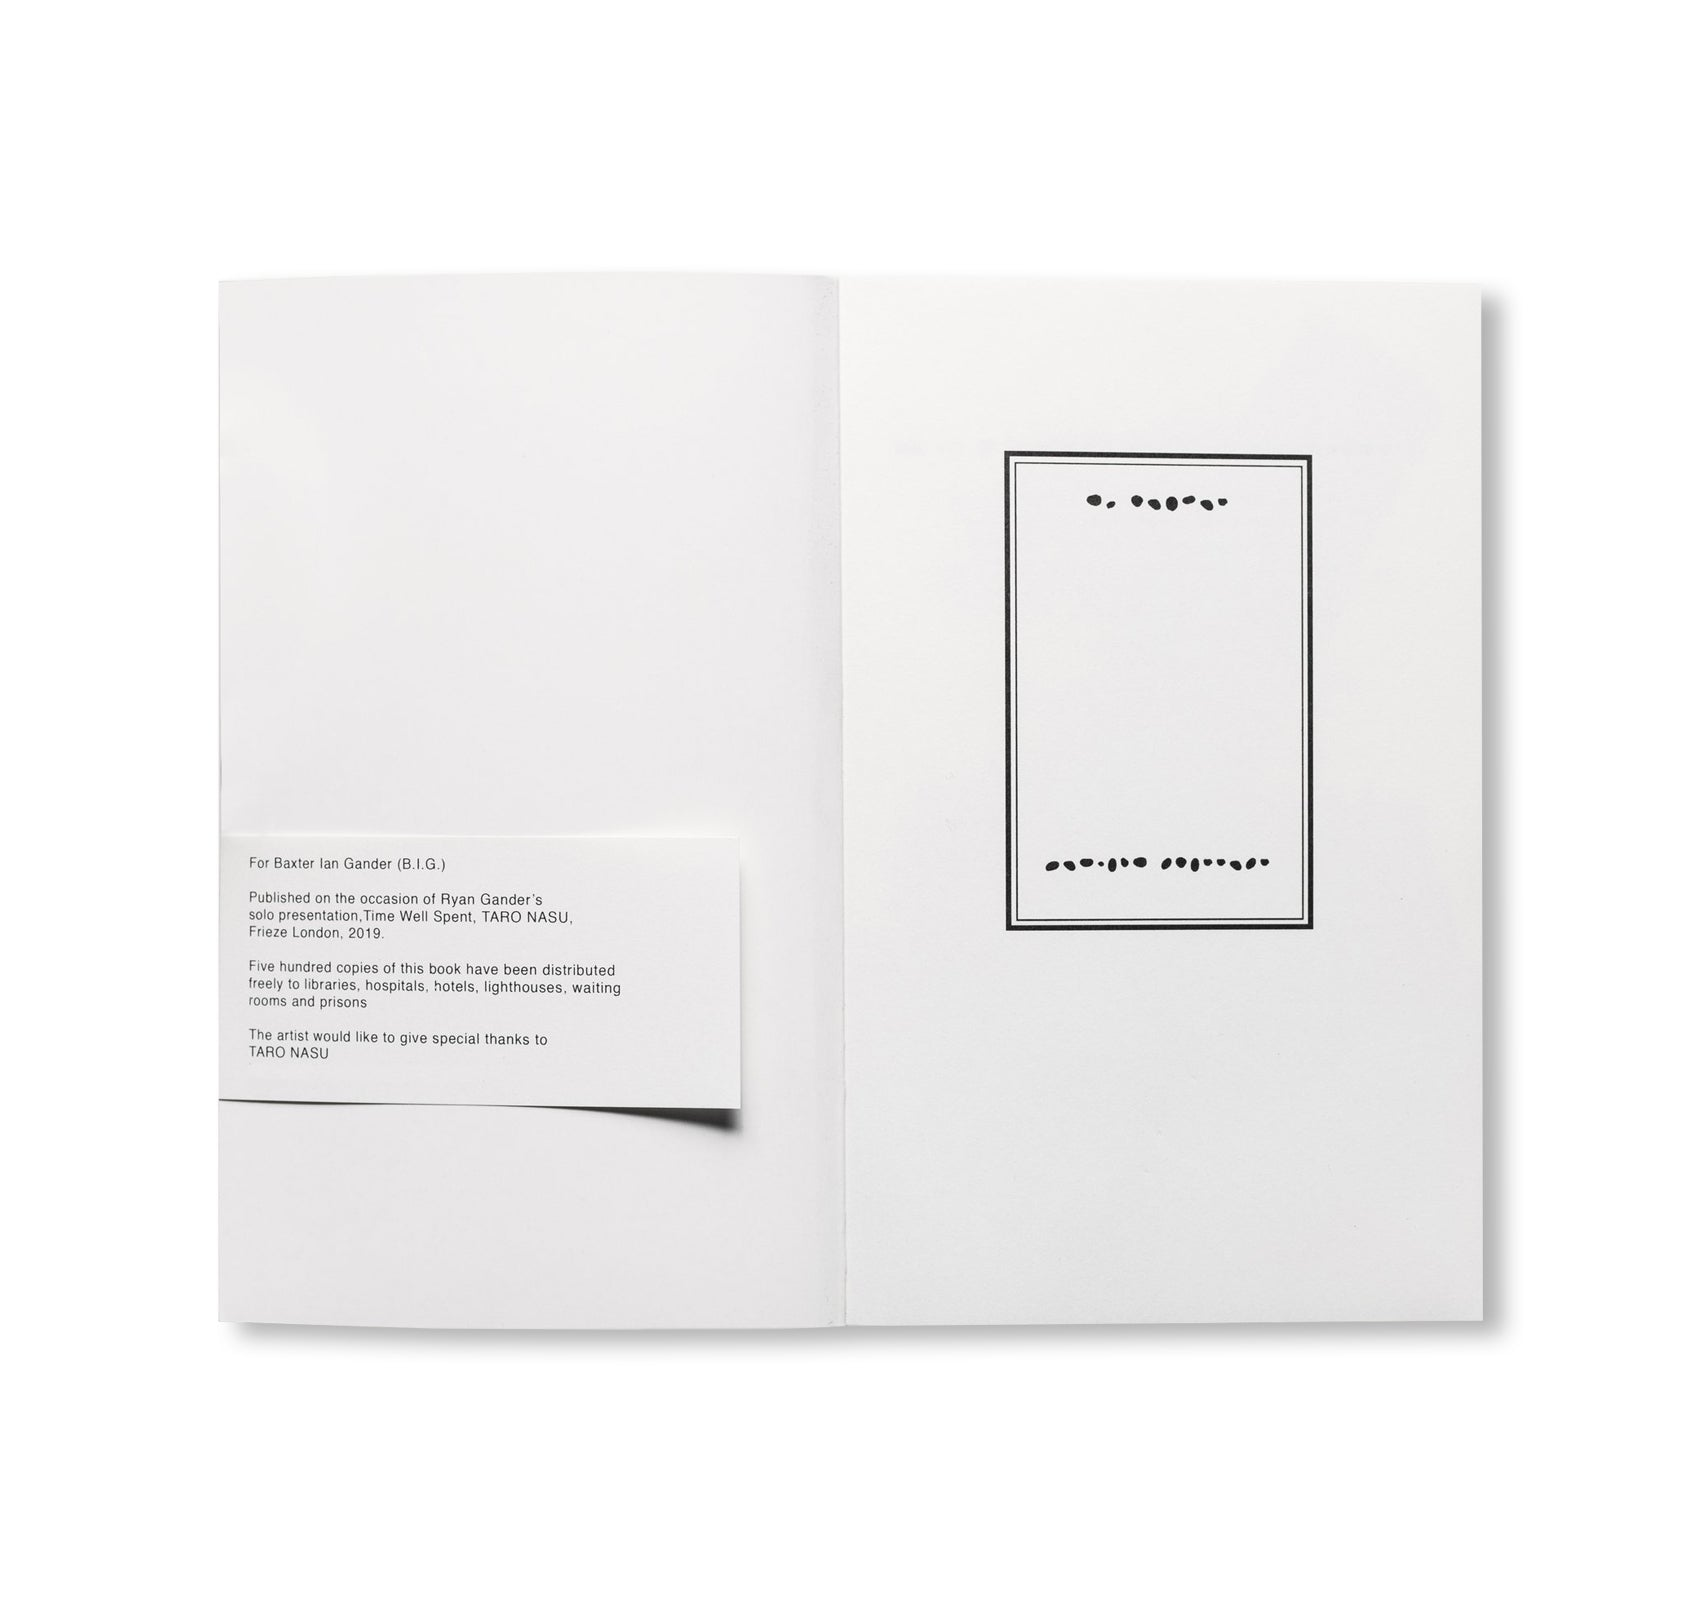 STABS AT ACADEMIA WITH PAINTERS TOOLS by Ryan Gander